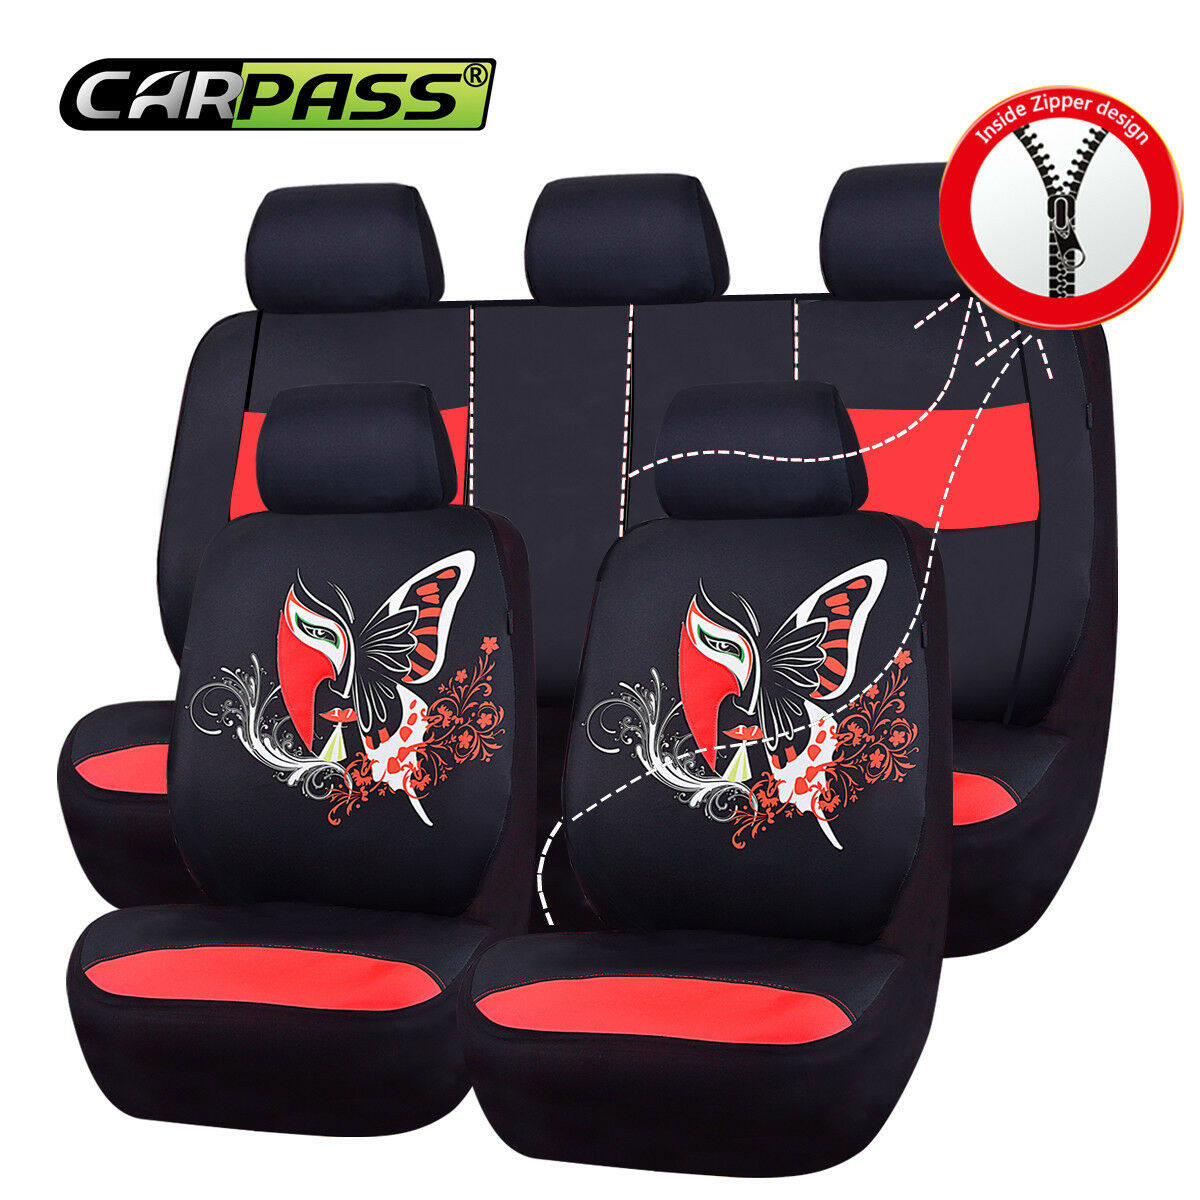 Black And Red CAR PASS 6PCS SUPER Universal Automobile Front Seat Covers Set Package-Fit for Vehicles,Black and Gray With Composite Sponge Inside,Airbag Compatiable /… NEW ARRIVAL